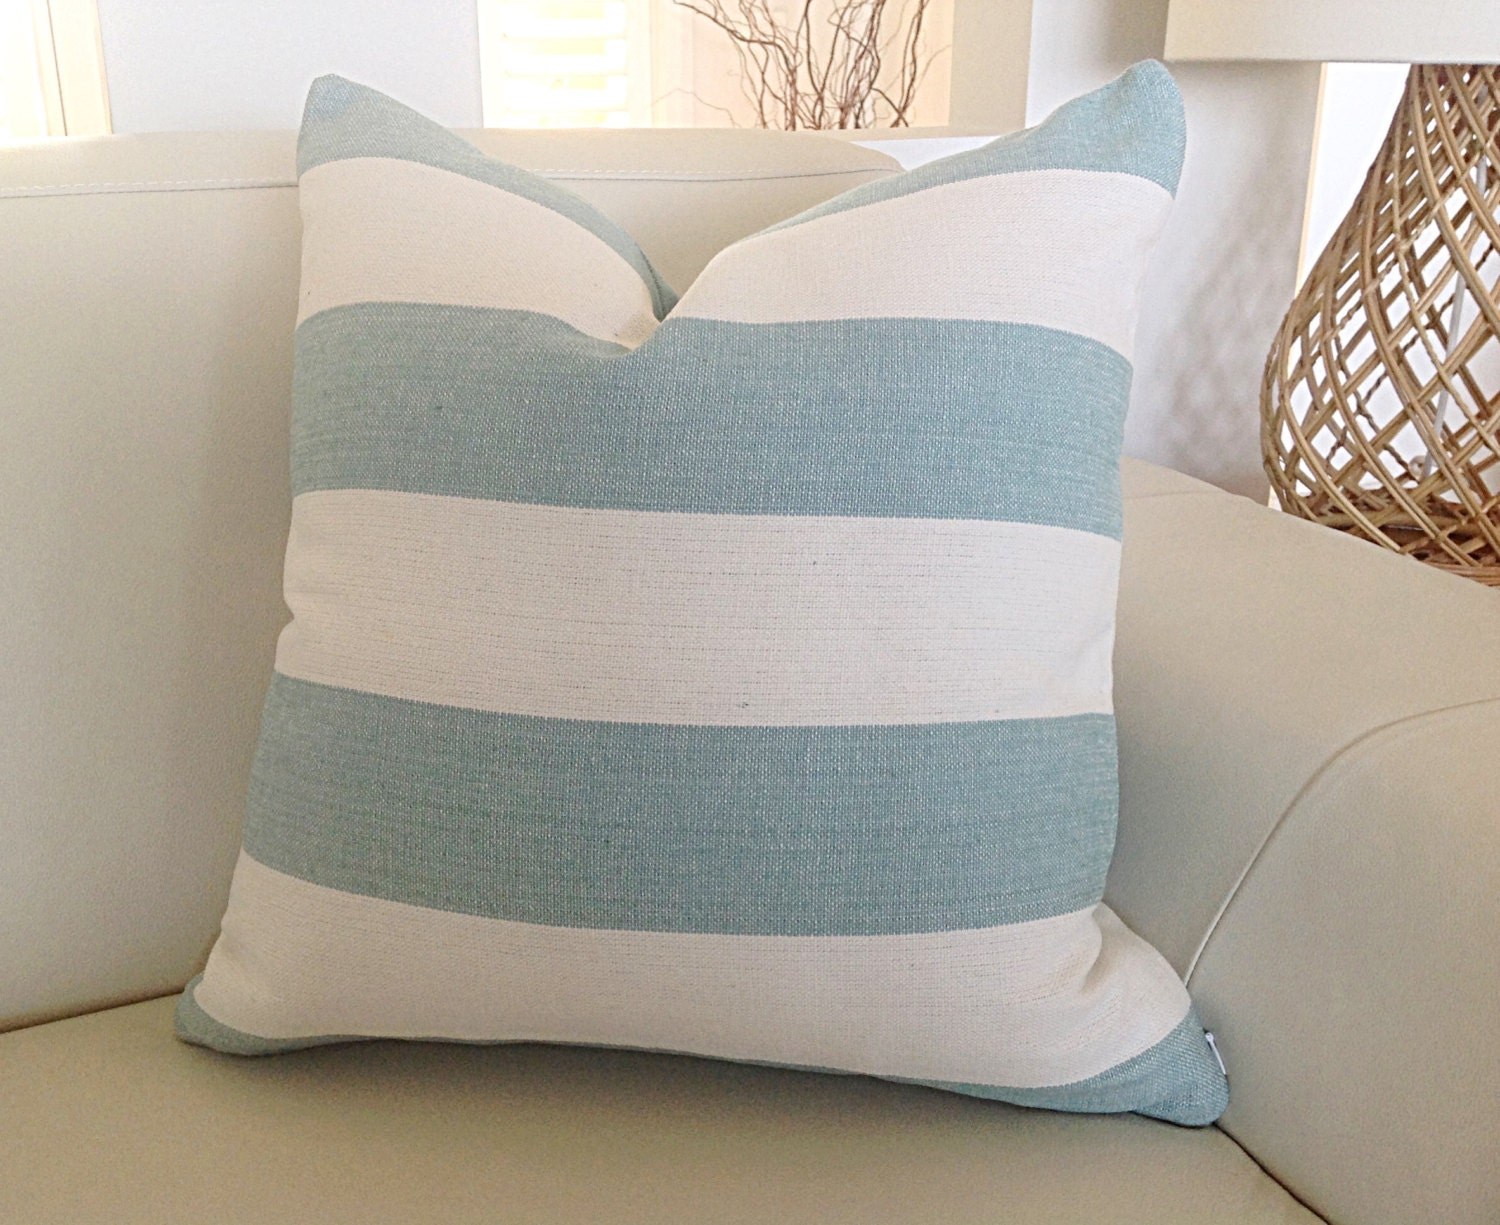 pillow pillows on style best pinterest decor malibu cushions decorative beach n coastal images collection